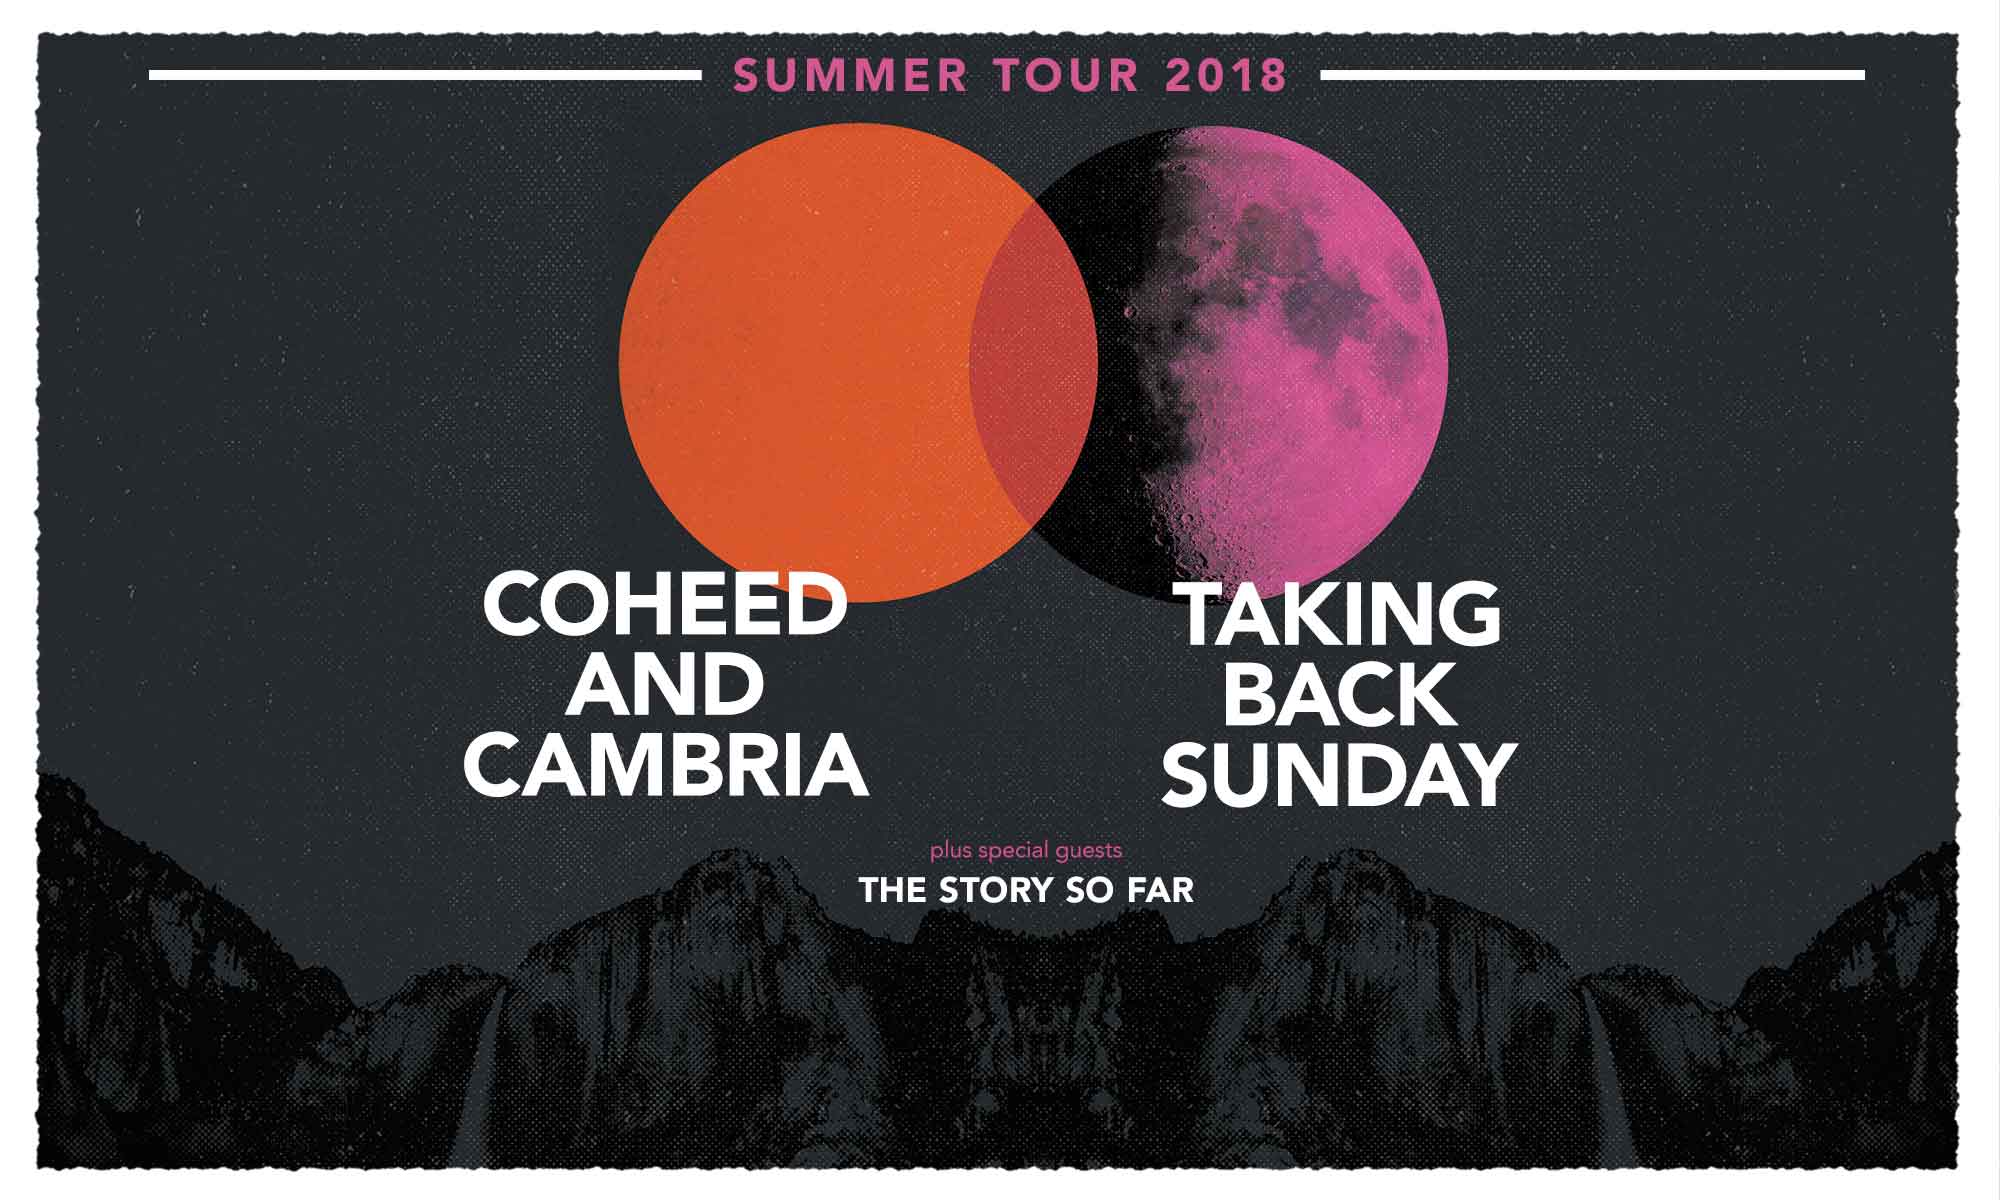 LIVE: Taking Back Sunday, Coheed and Cambria, The Story So Far highlight what summer is all about